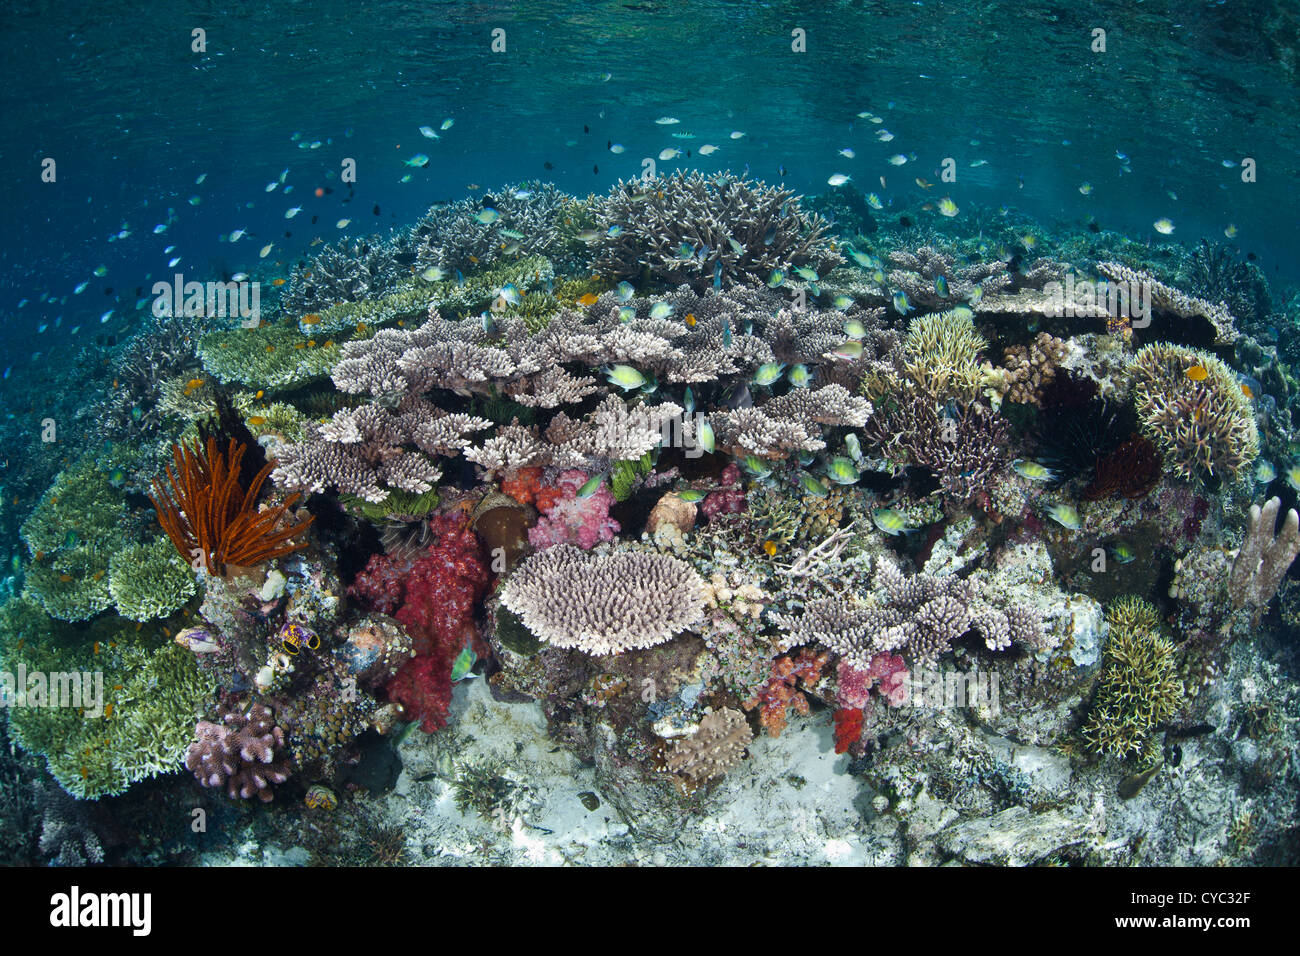 Small reef fishes, mainly damselfish species, hover over a diverse coral reef growing near the island of Misool, - Stock Image